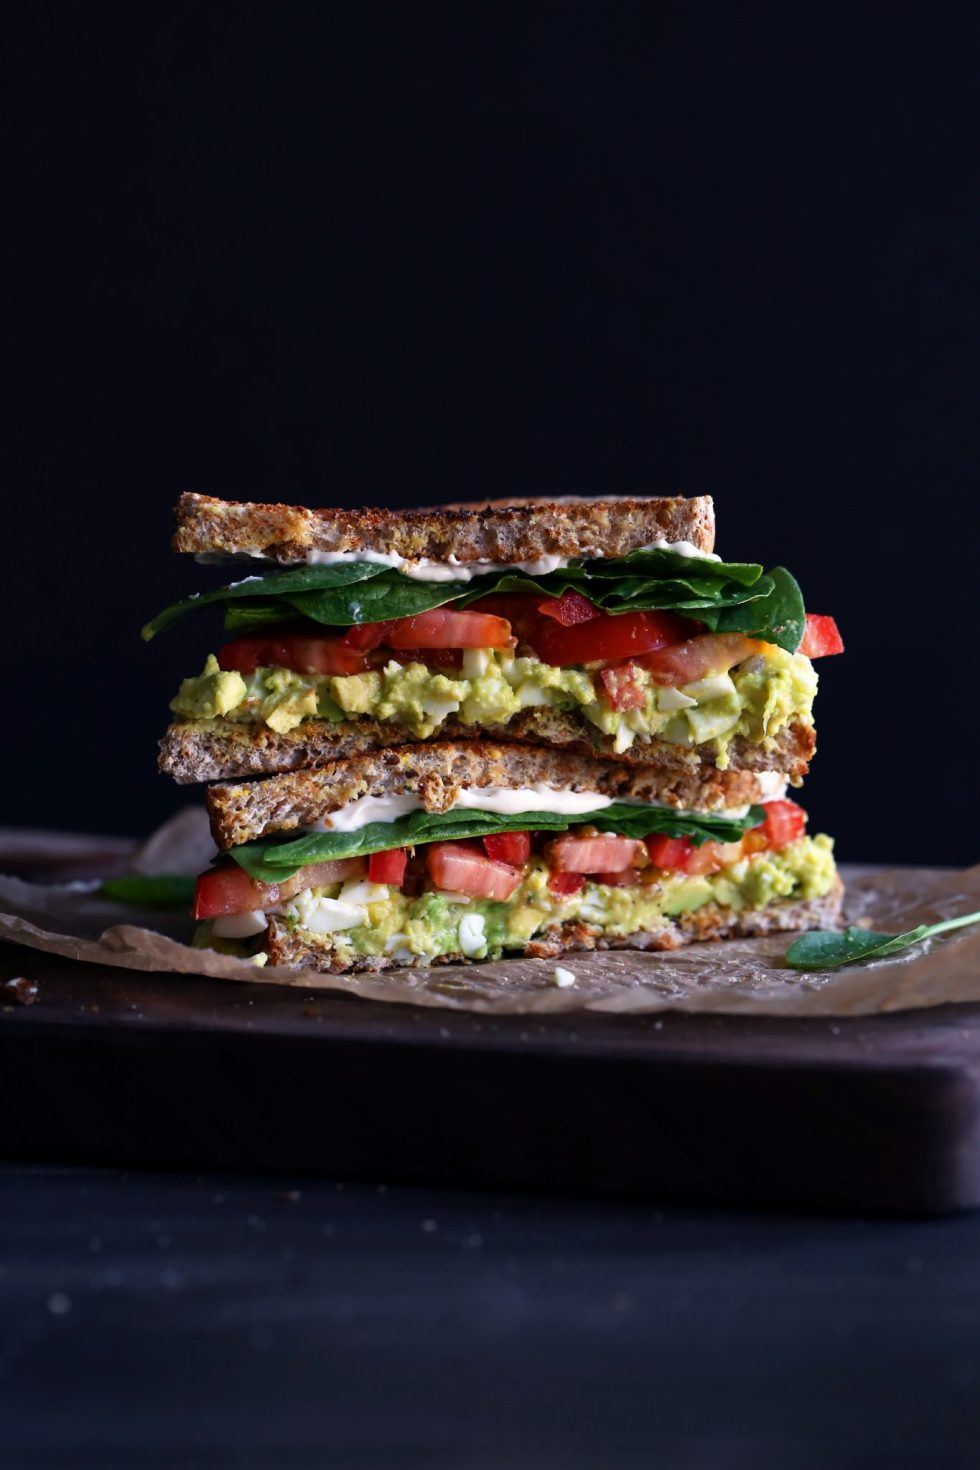 Avocado Egg Salad Sandwiches | Egg salad made with avocado instead of mayonnaise. Free of gluten and dairy.